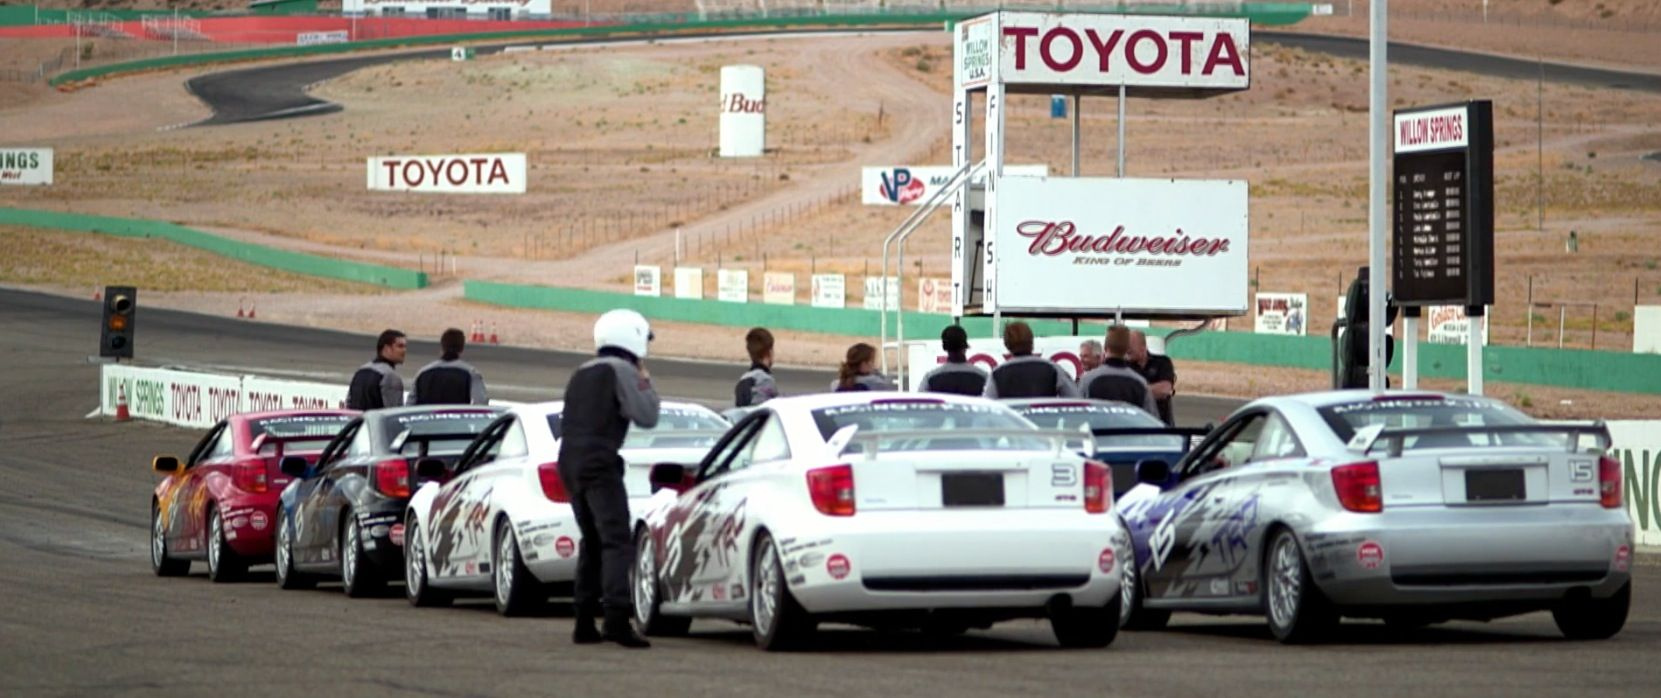 Budweiser And Toyota Billboards In Born To Race Fast Track